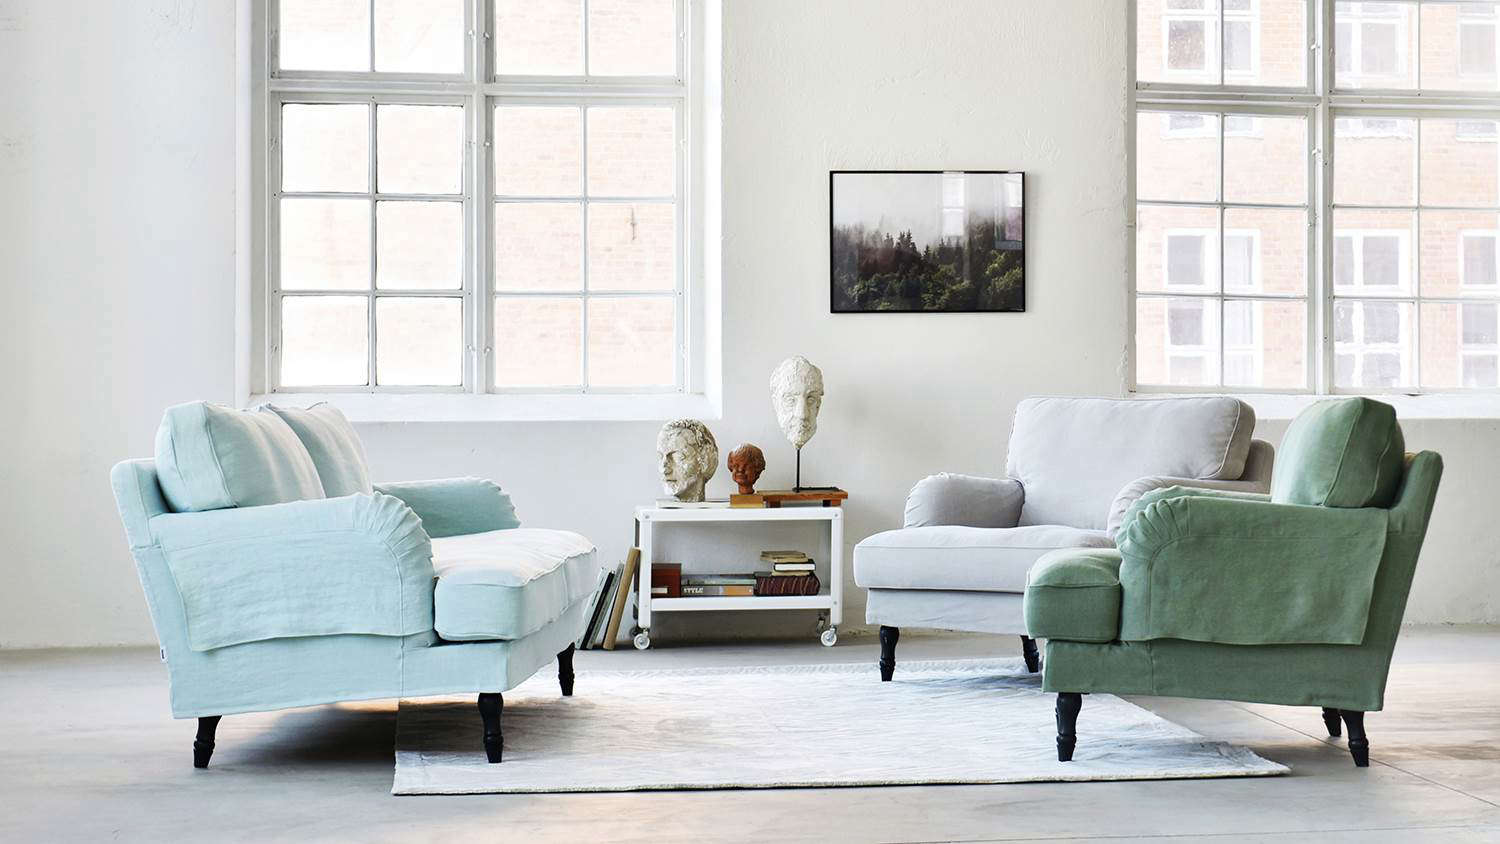 5 Companies That Make It Easy To Upgrade Your Ikea Sofa - Ikea Sofa Quality